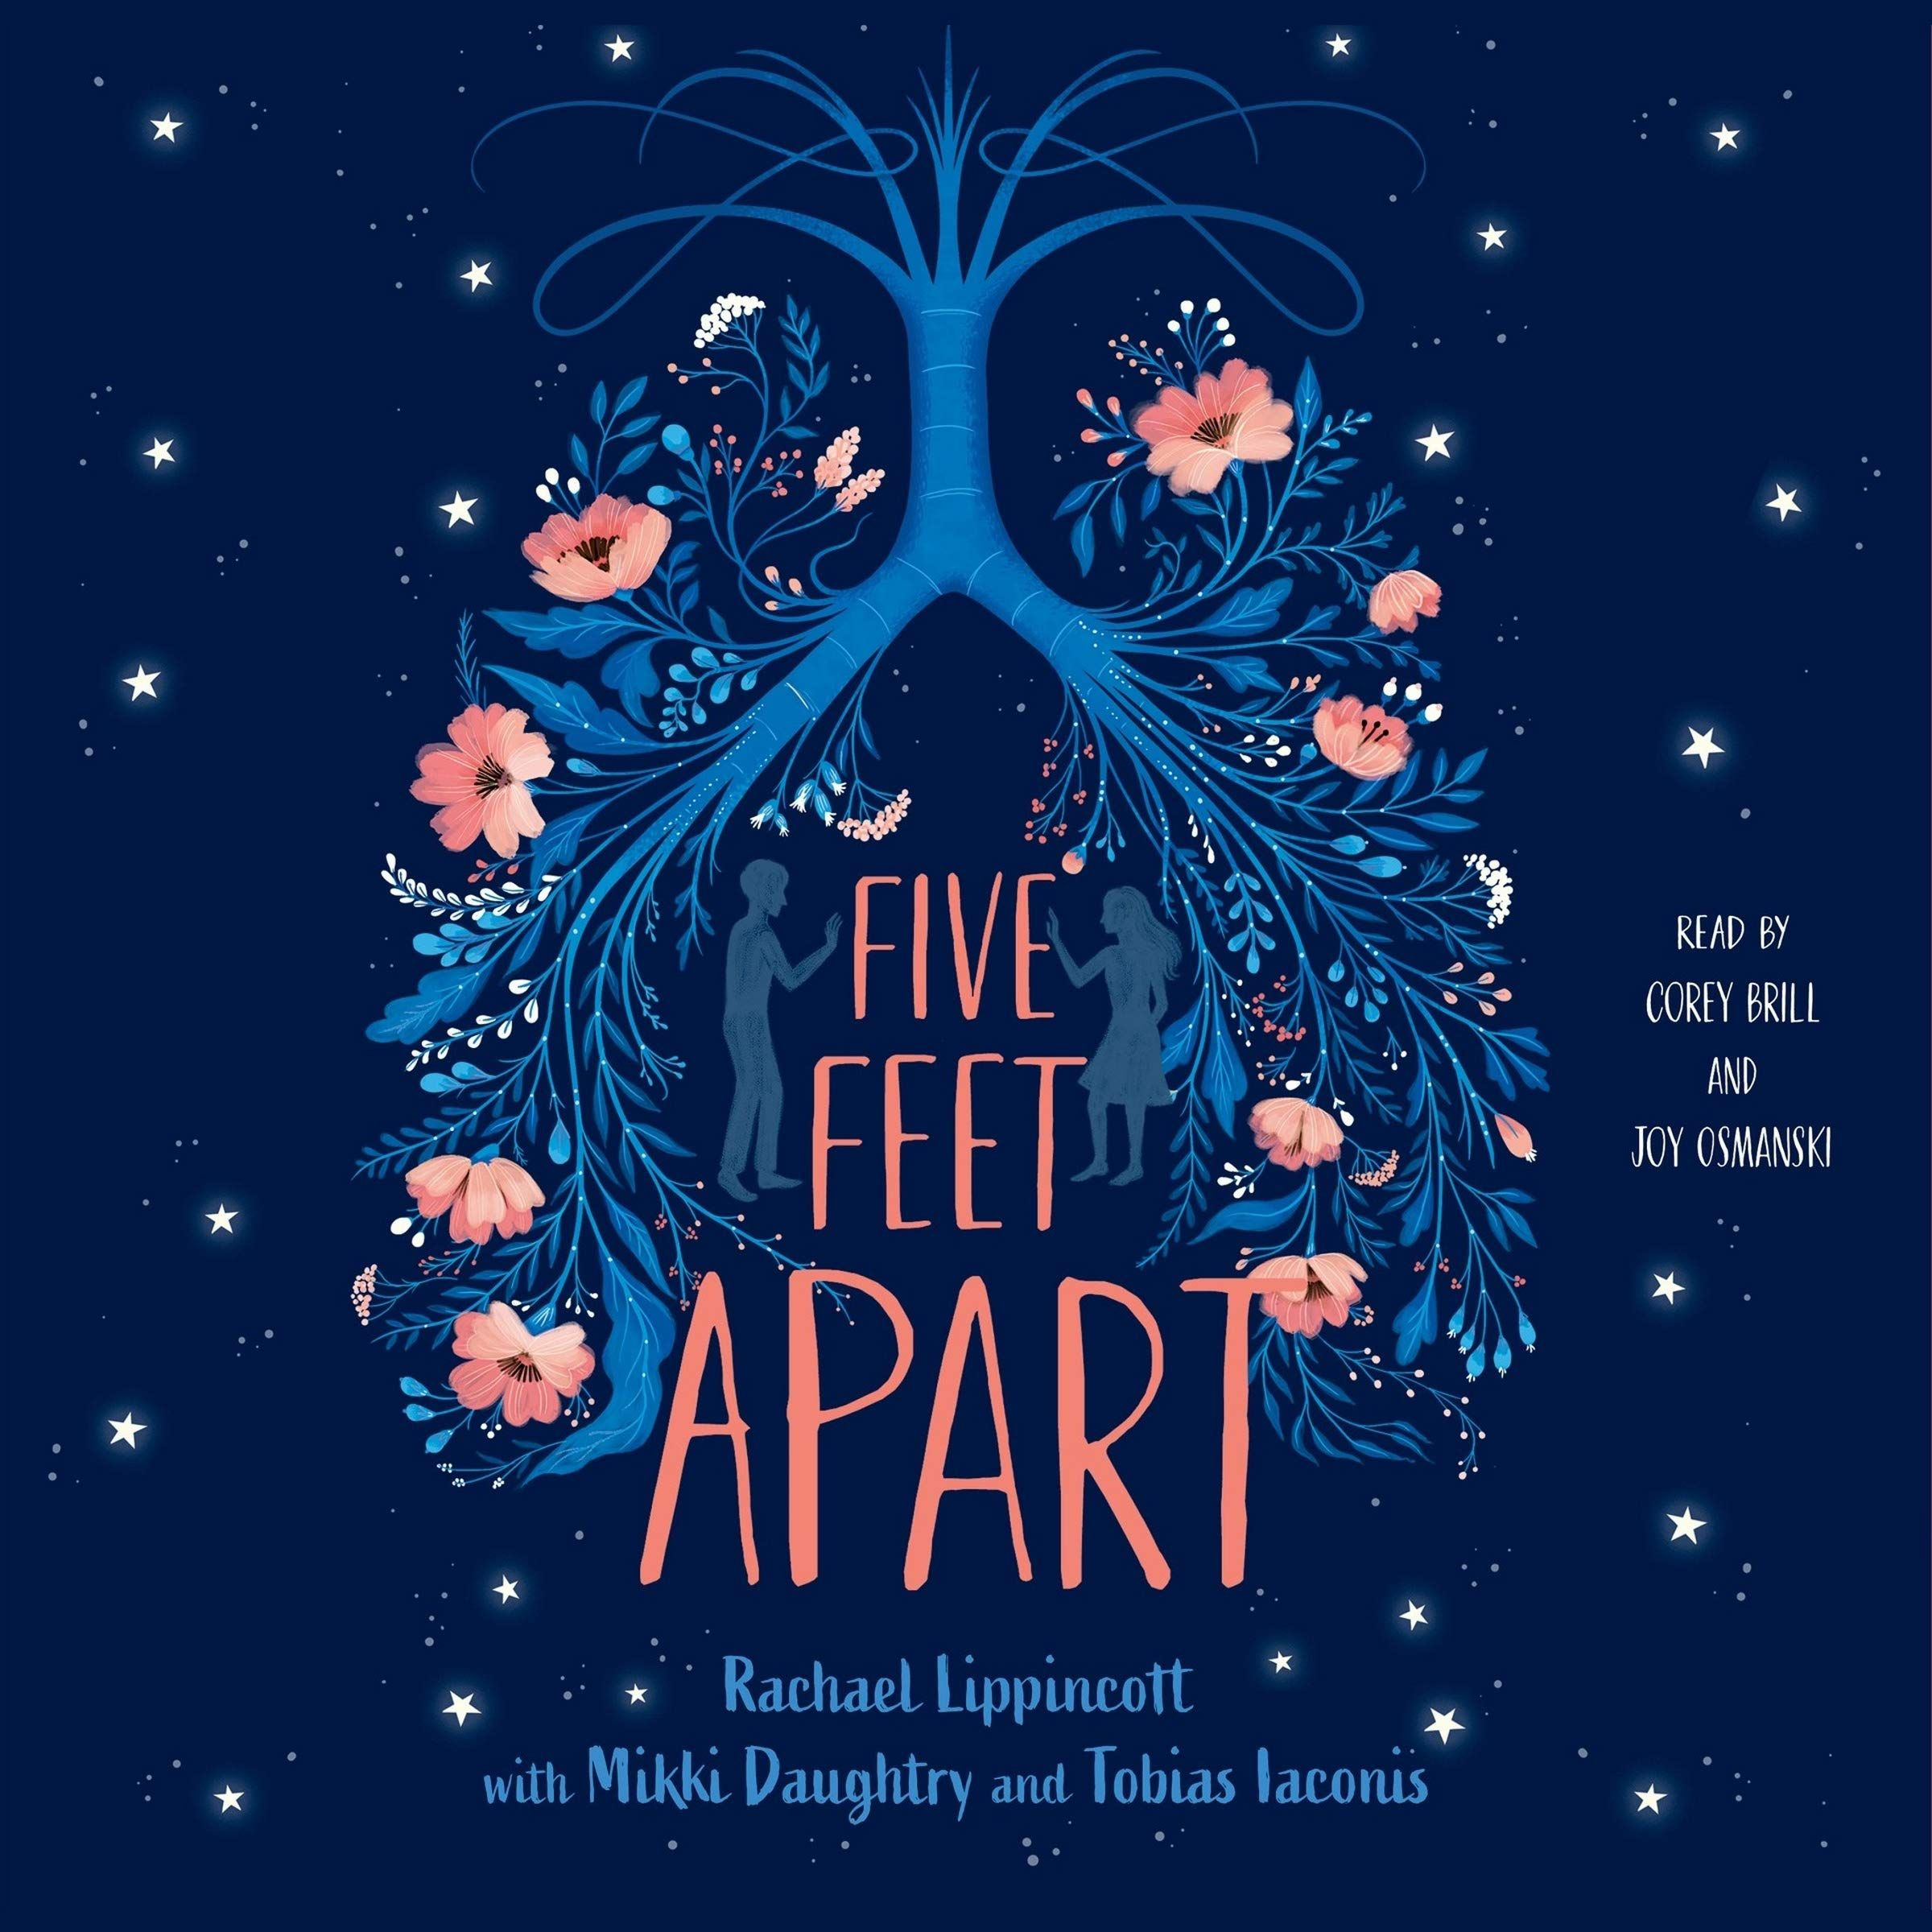 Five Feet Apart On DVD Now Starring Cole Sprouse.